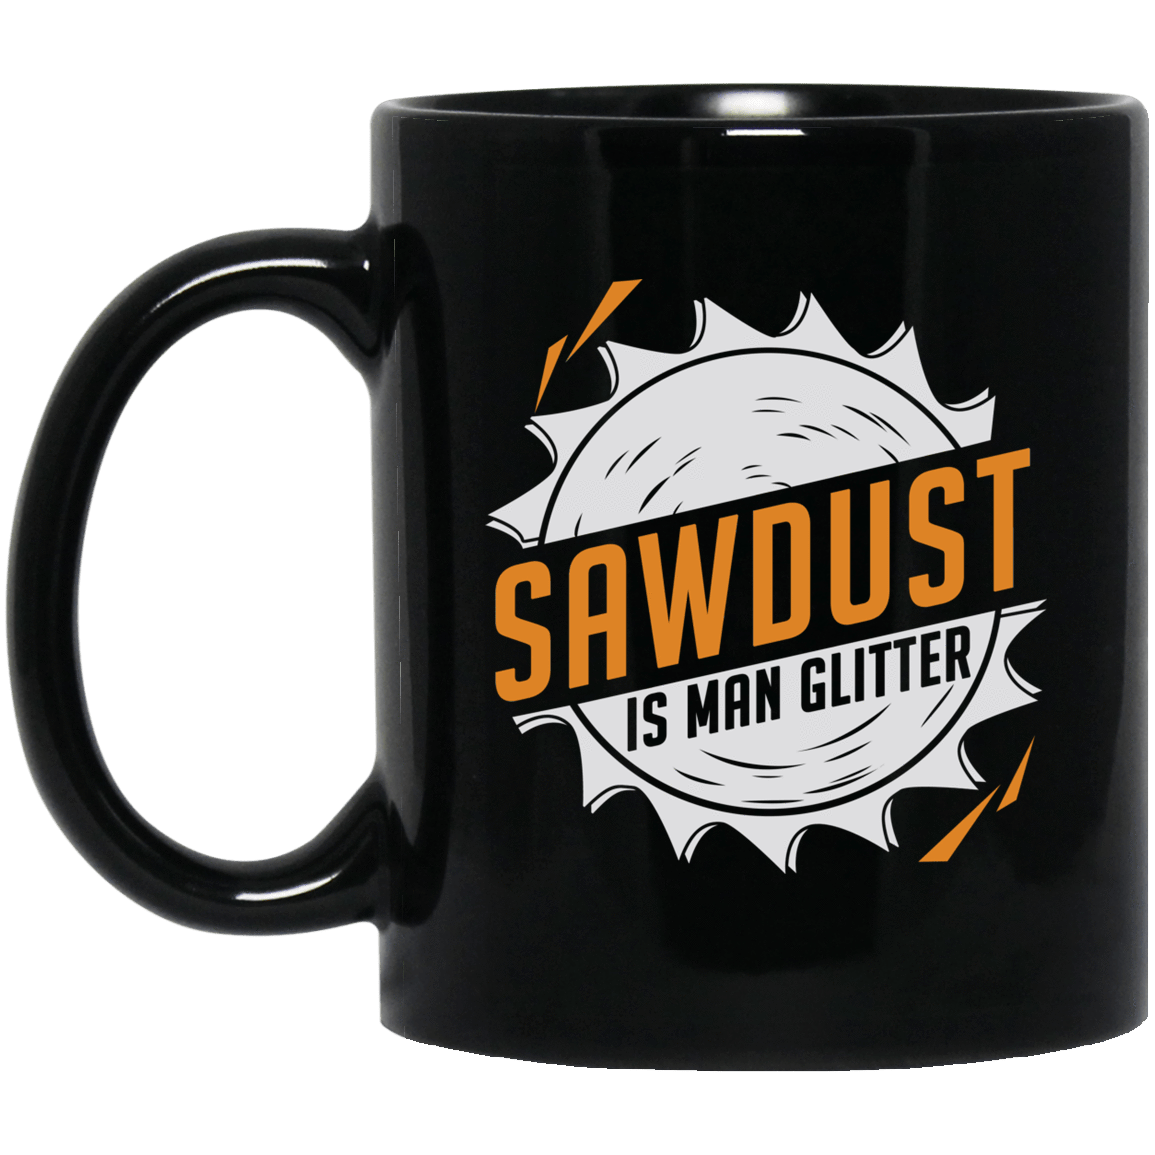 Sawdust Is Man Glitter Mug 1065-10181-73548636-49307 - Tee Ript